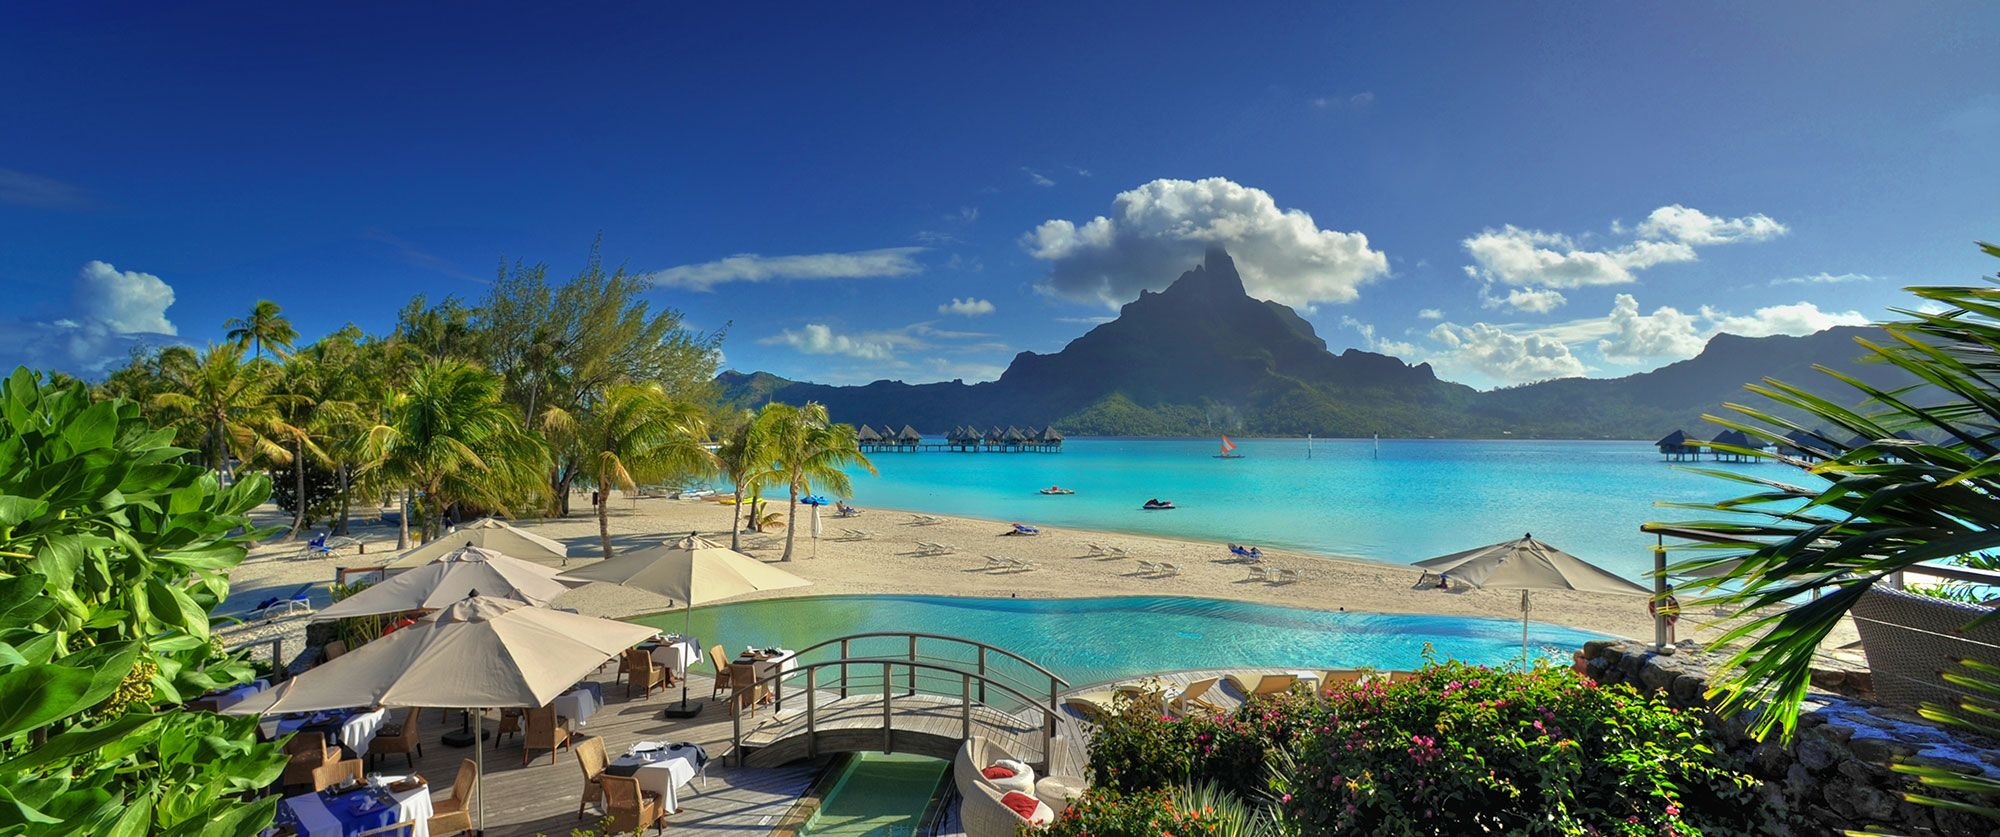 Check Out One Of Our Favorite Tahiti Itineraries Here Httpwww - Tahiti packages